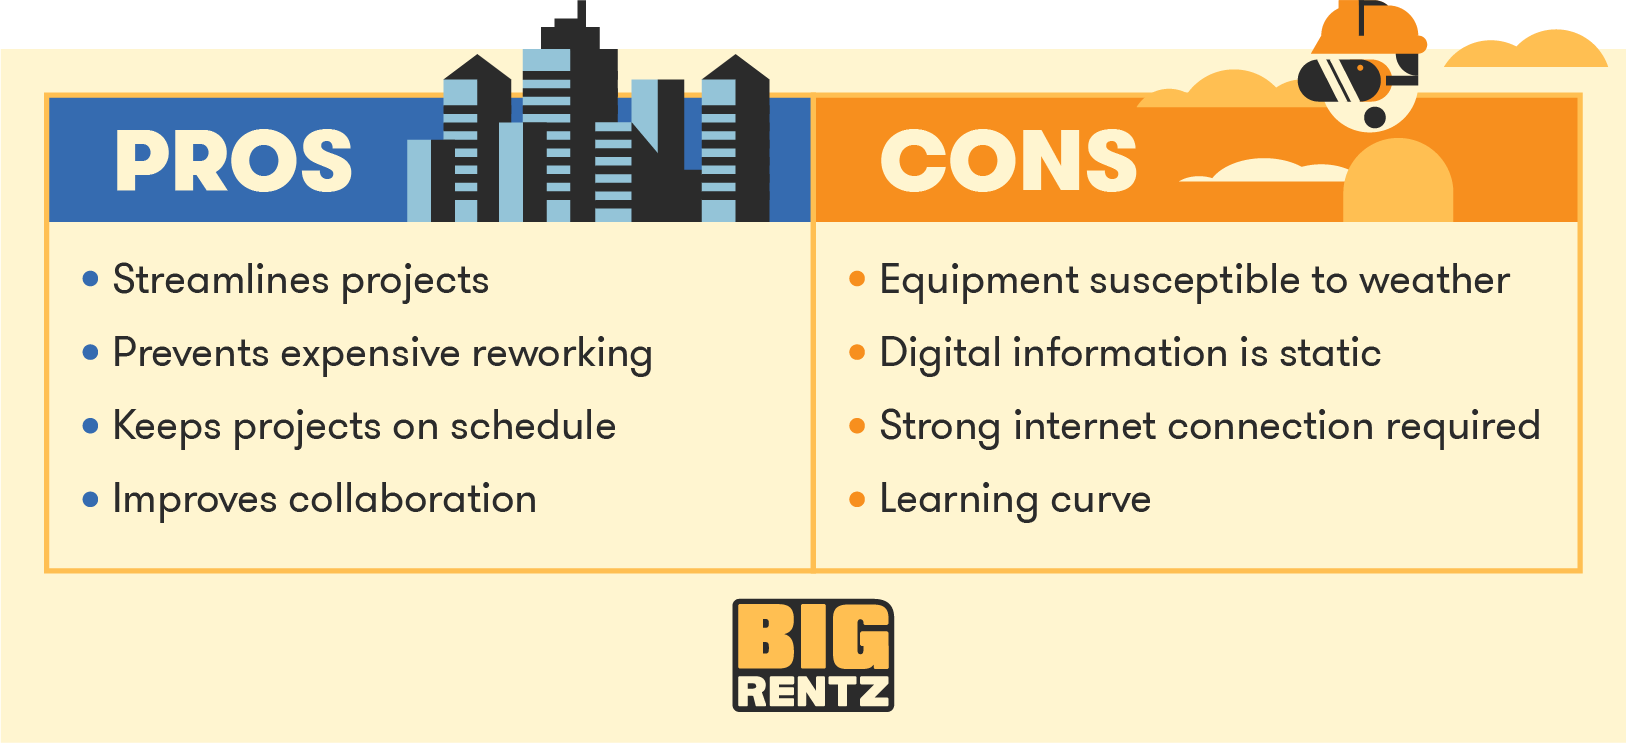 The pros and cons of using augmented reality in construction.